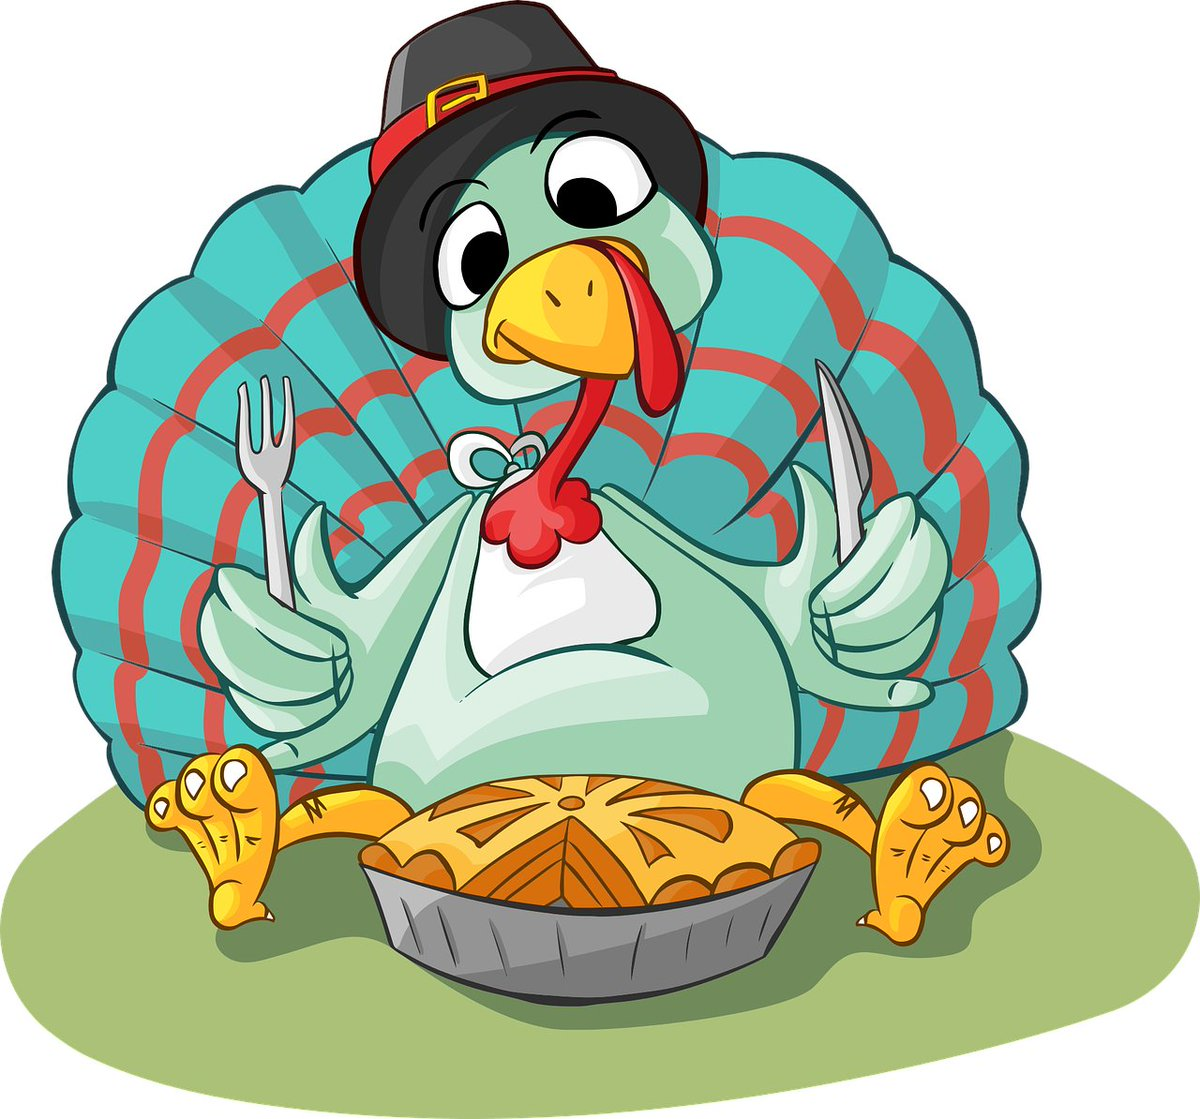 The Thanksgiving weekend has started!!!!!!!!  Who is excited? What are your plans? Are you celebrating thanksgiving? #thanksgivingweekend #holiday #friends #family #food #stuffed